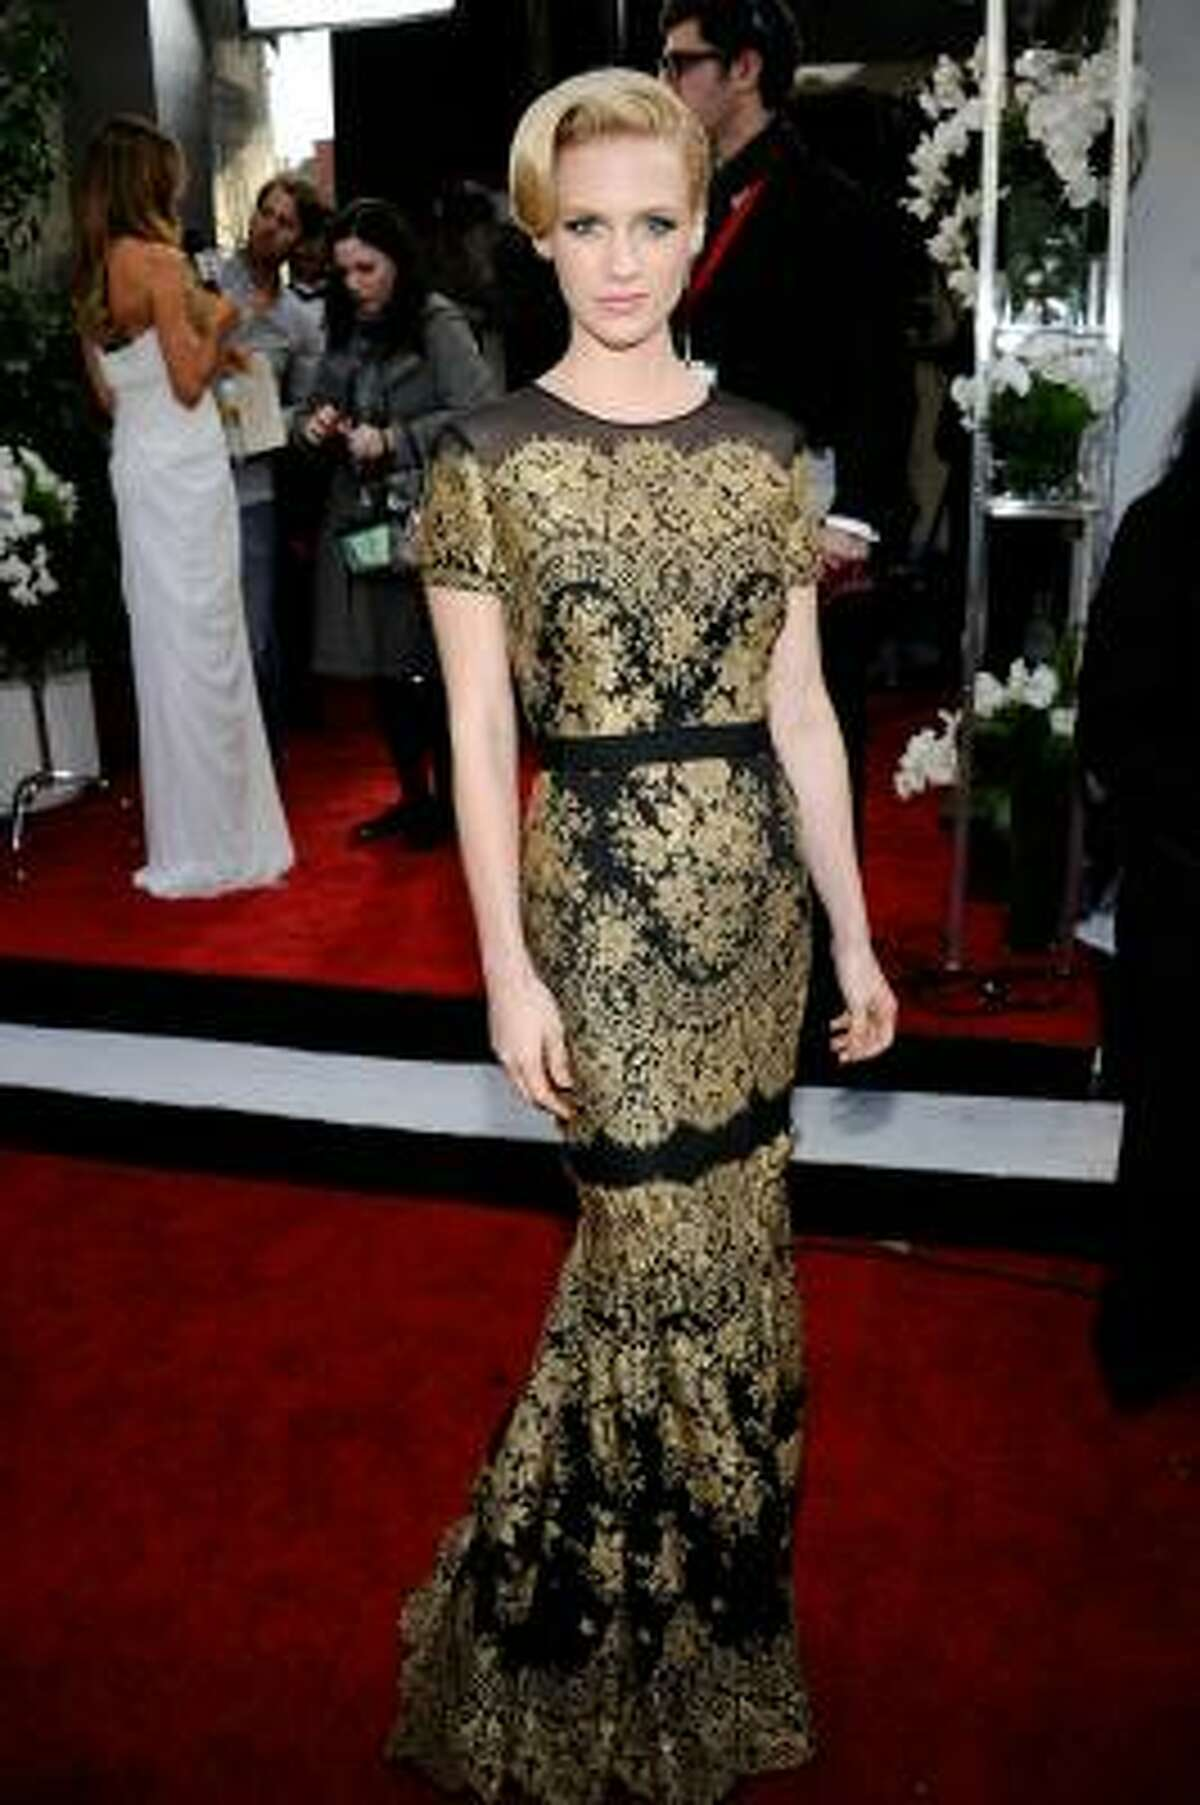 January Jones in a brown and gold lace Carolina Herrera dress with a sophisticated up-do.